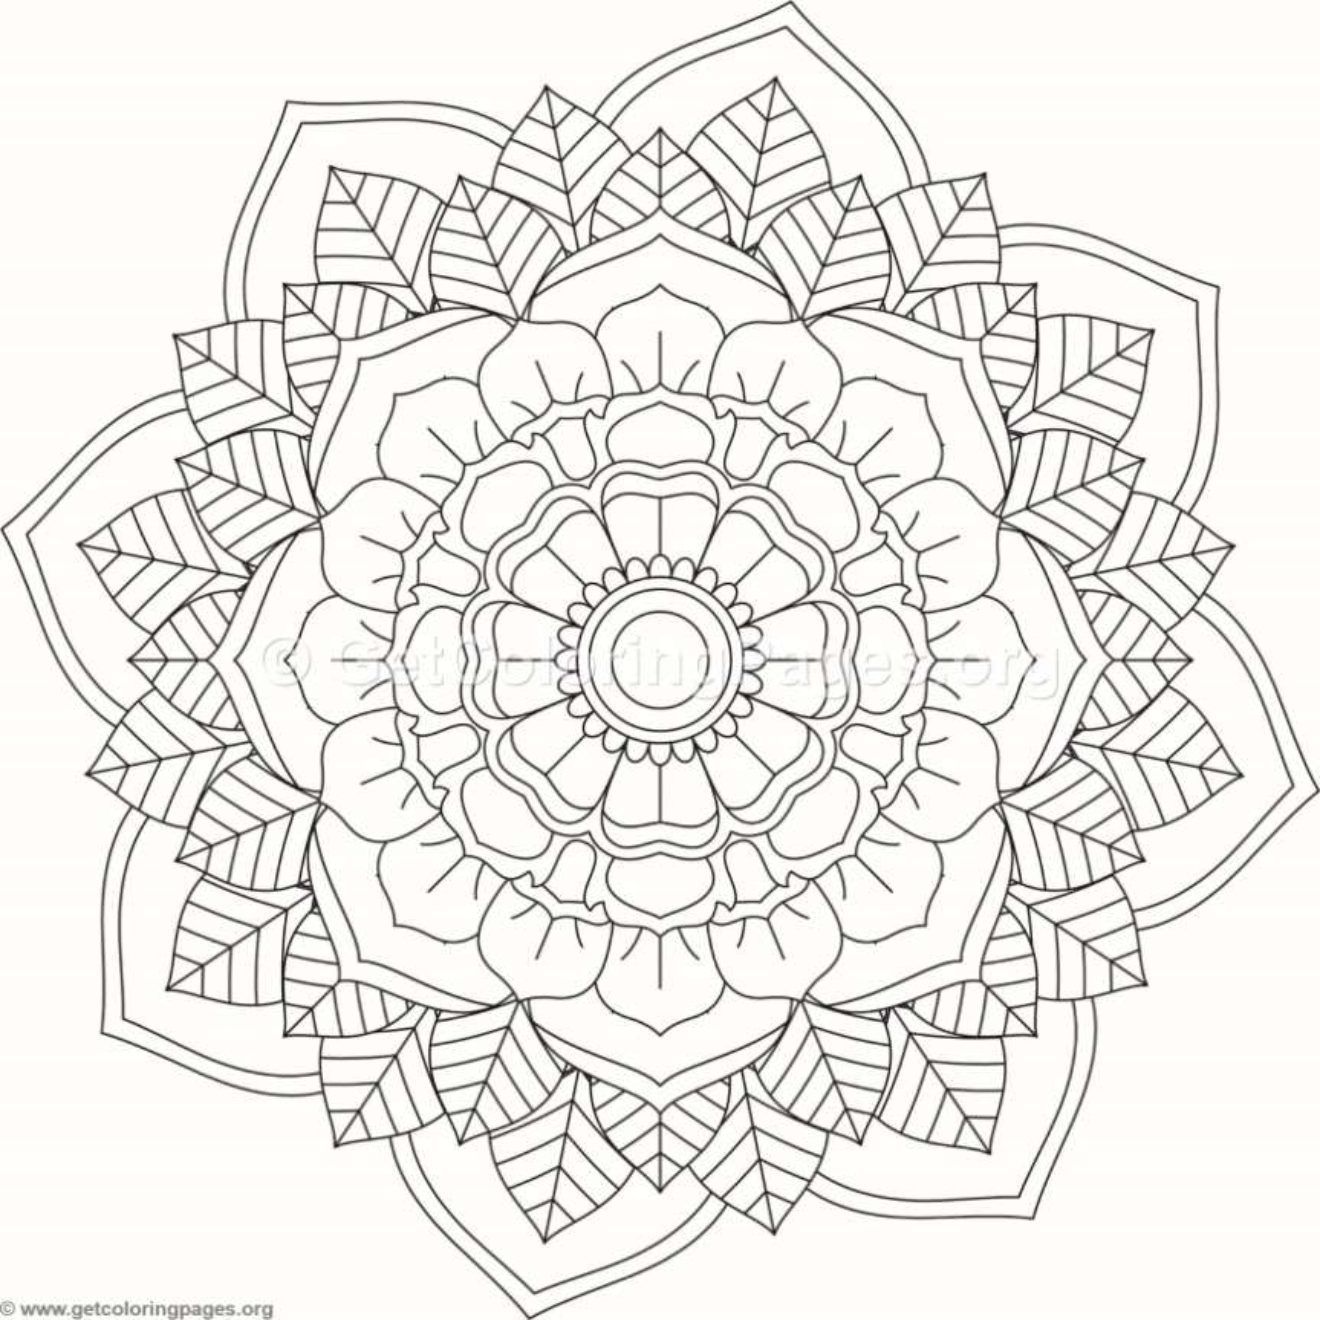 Flower Mandala Coloring Pages #207